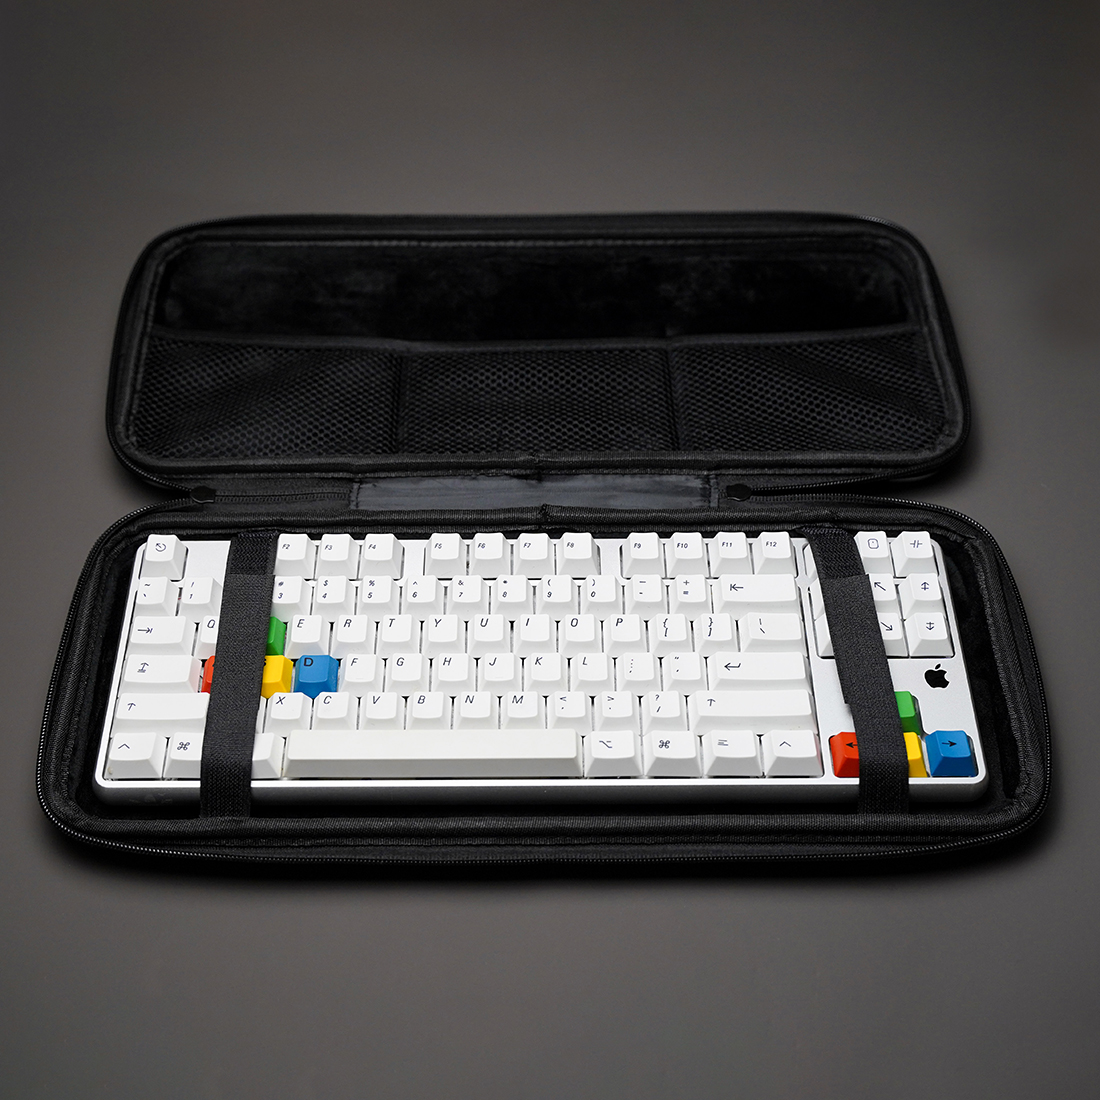 61 Keys Keyboard Storage Bag Carrying Case for 60% Mechanical Keyboard